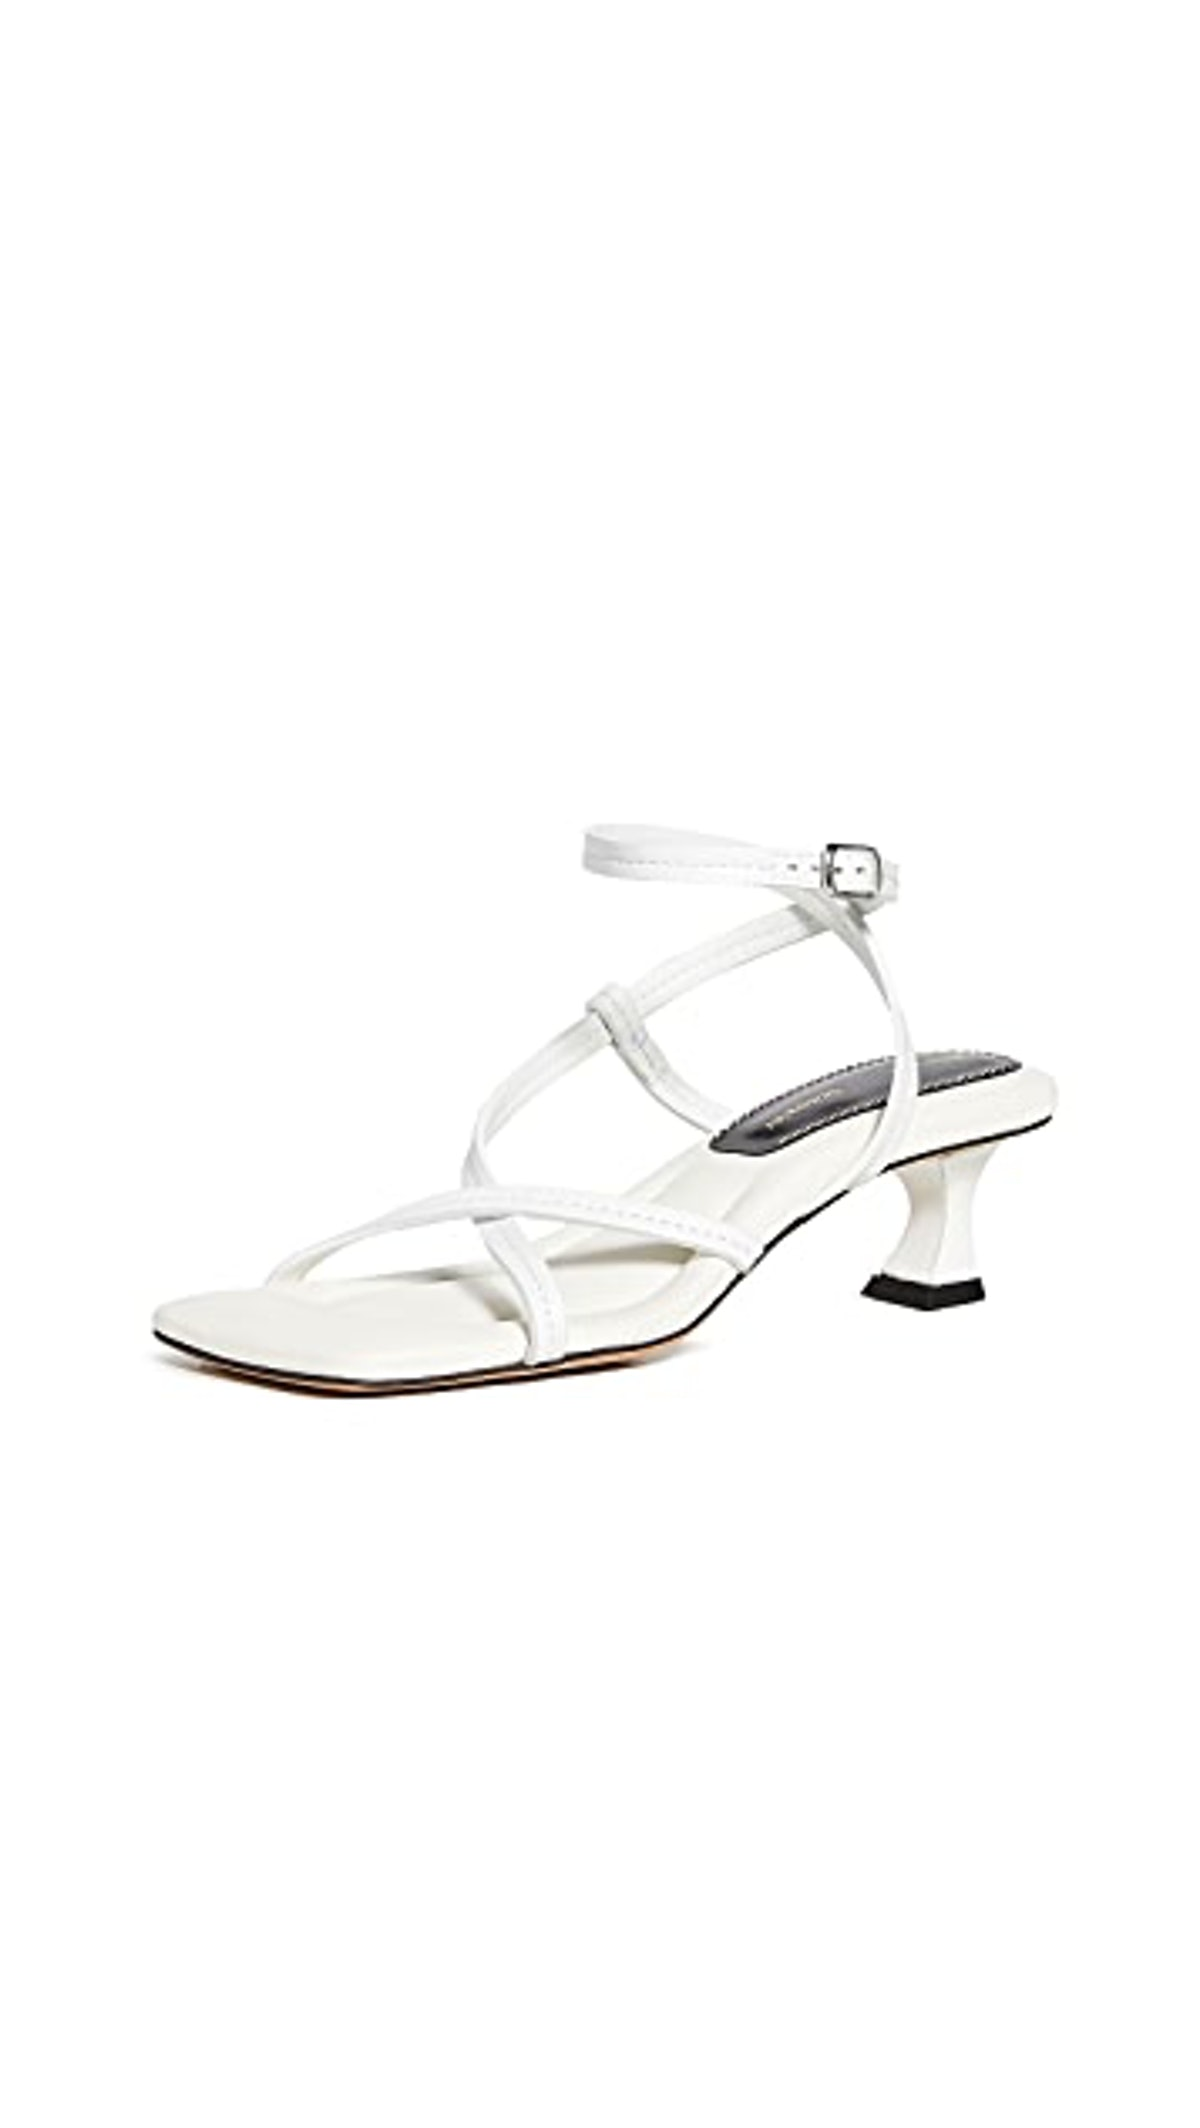 Square Toe Low Strappy Sandals